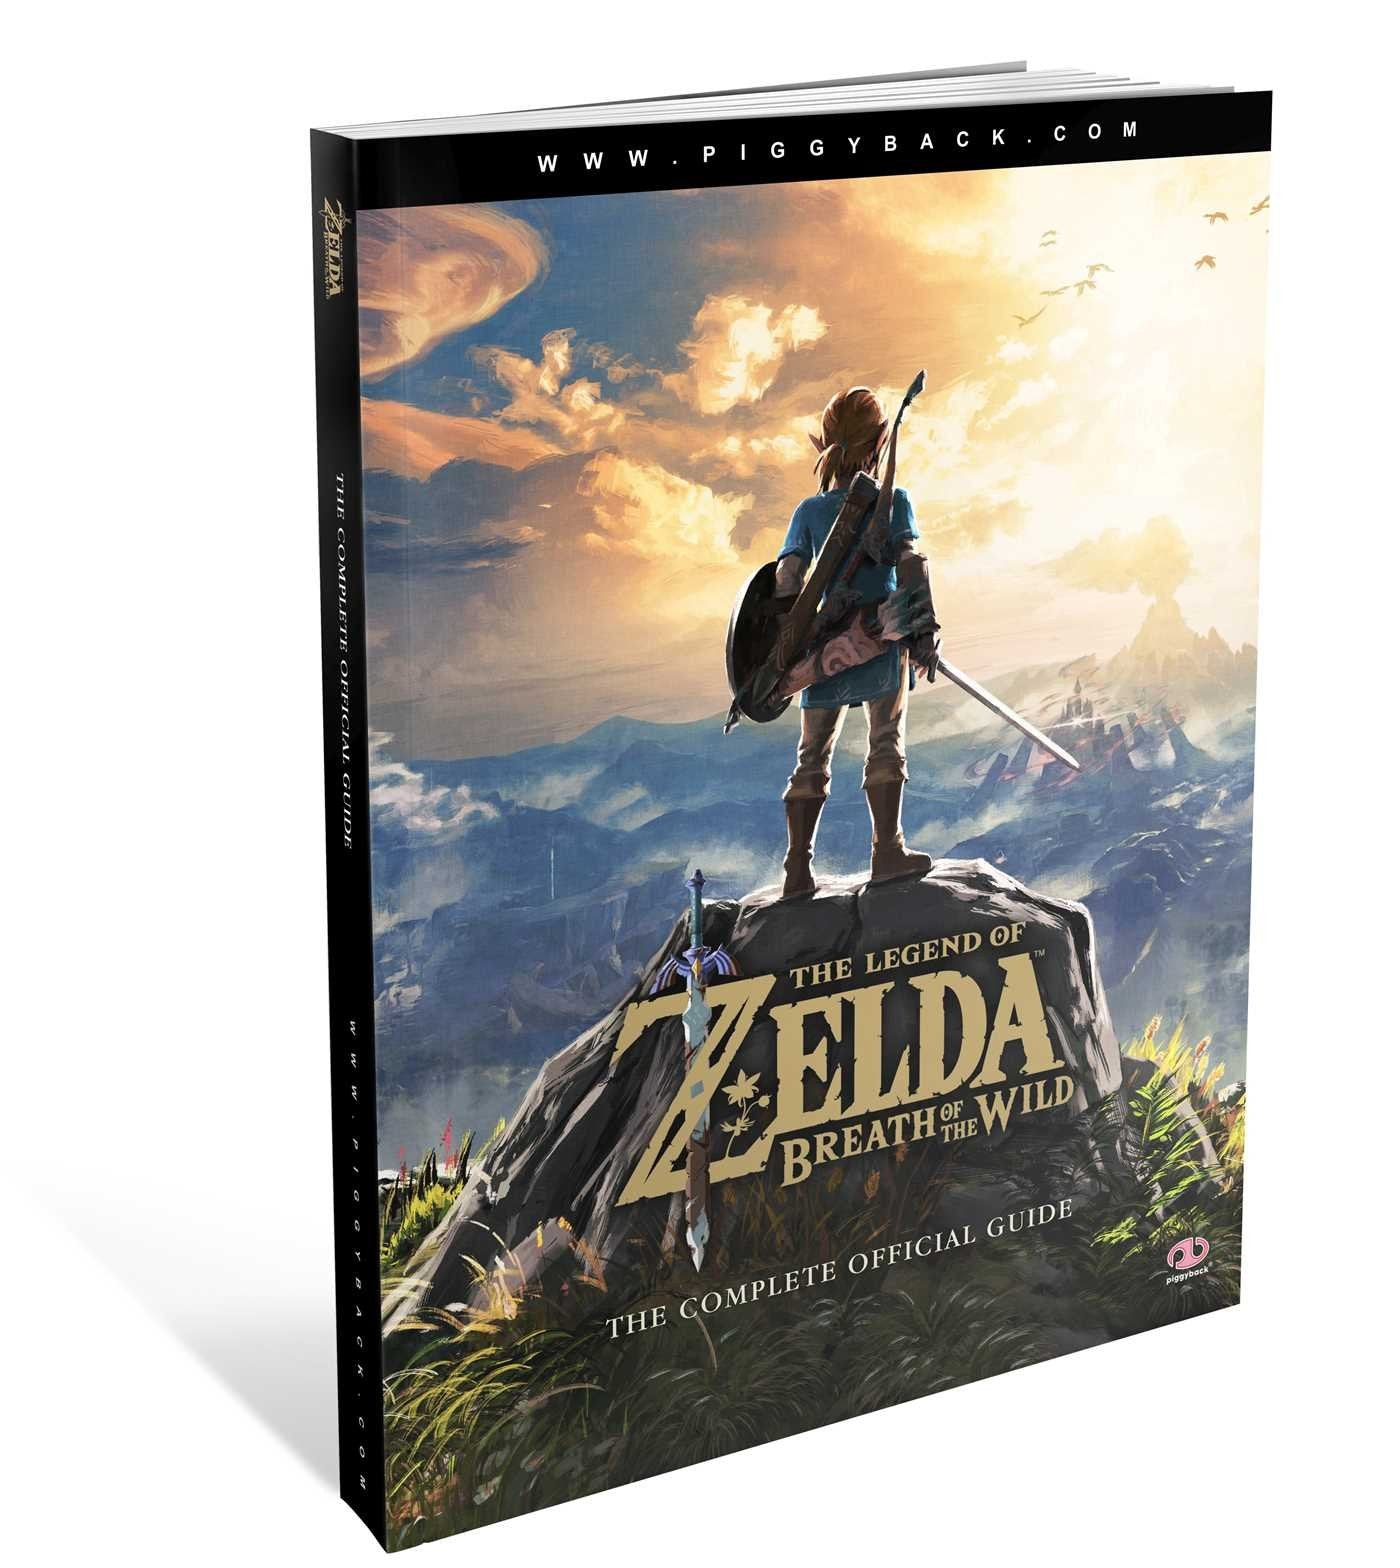 The Legend of Zelda: Breath of the Wild The Complete Official Guide Paperback - Book by PiggyBack The Chelsea Gamer